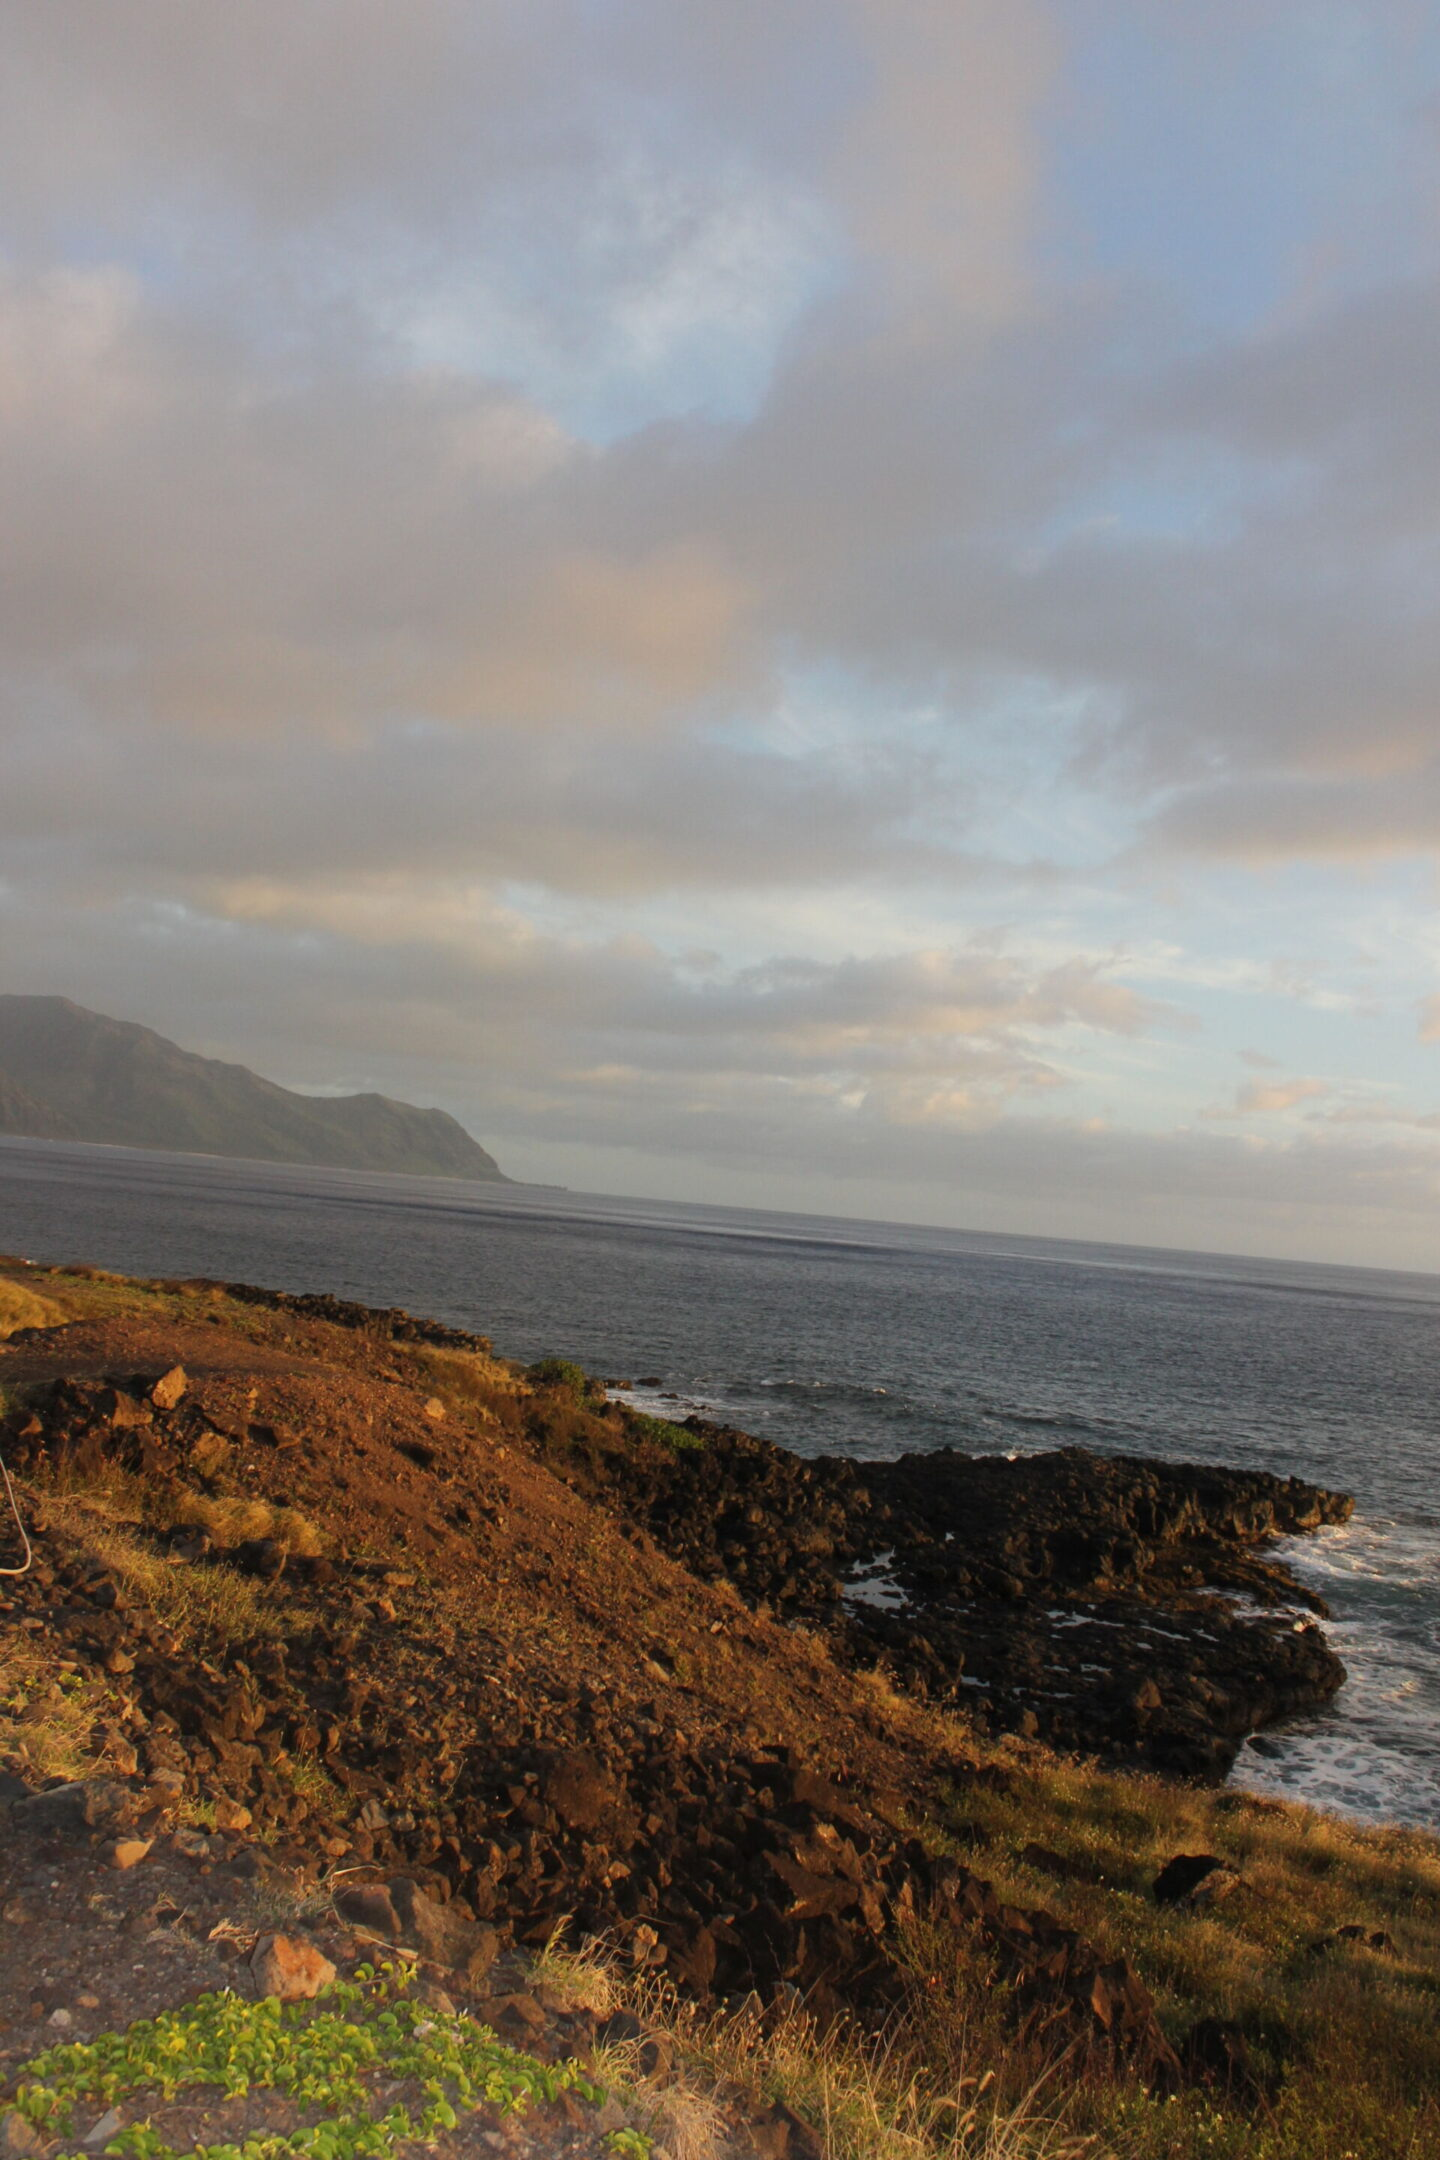 The glorious Pacific and mountainous landscape at Ka'ena Point on Oahu, where we hike to a seabird sanctuary to glimpse Laysan albatross beauty - Hello Lovely Studio.